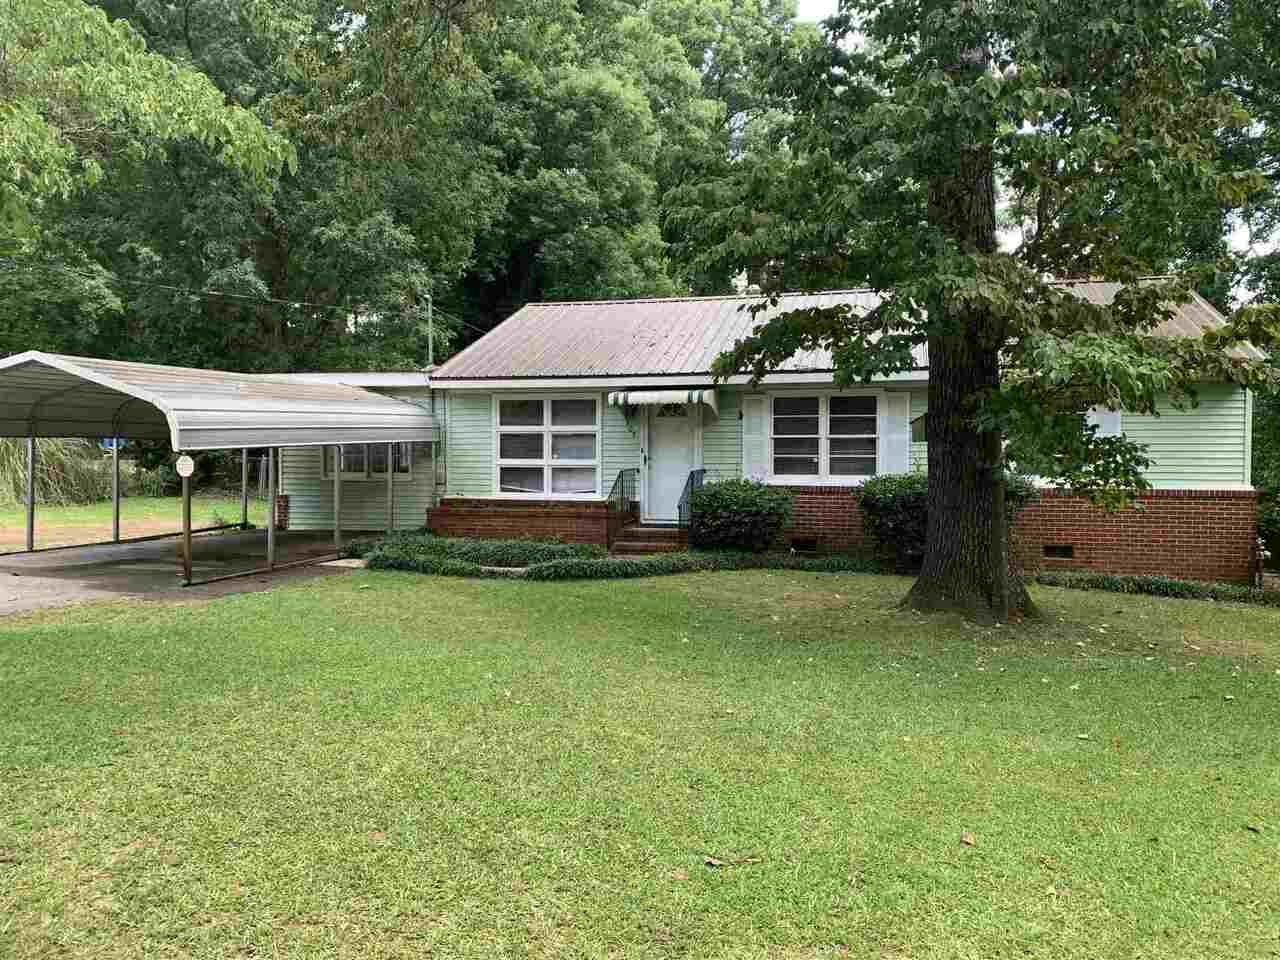 103 Pine Ave, Griffin, GA 30224 - #: 8994458